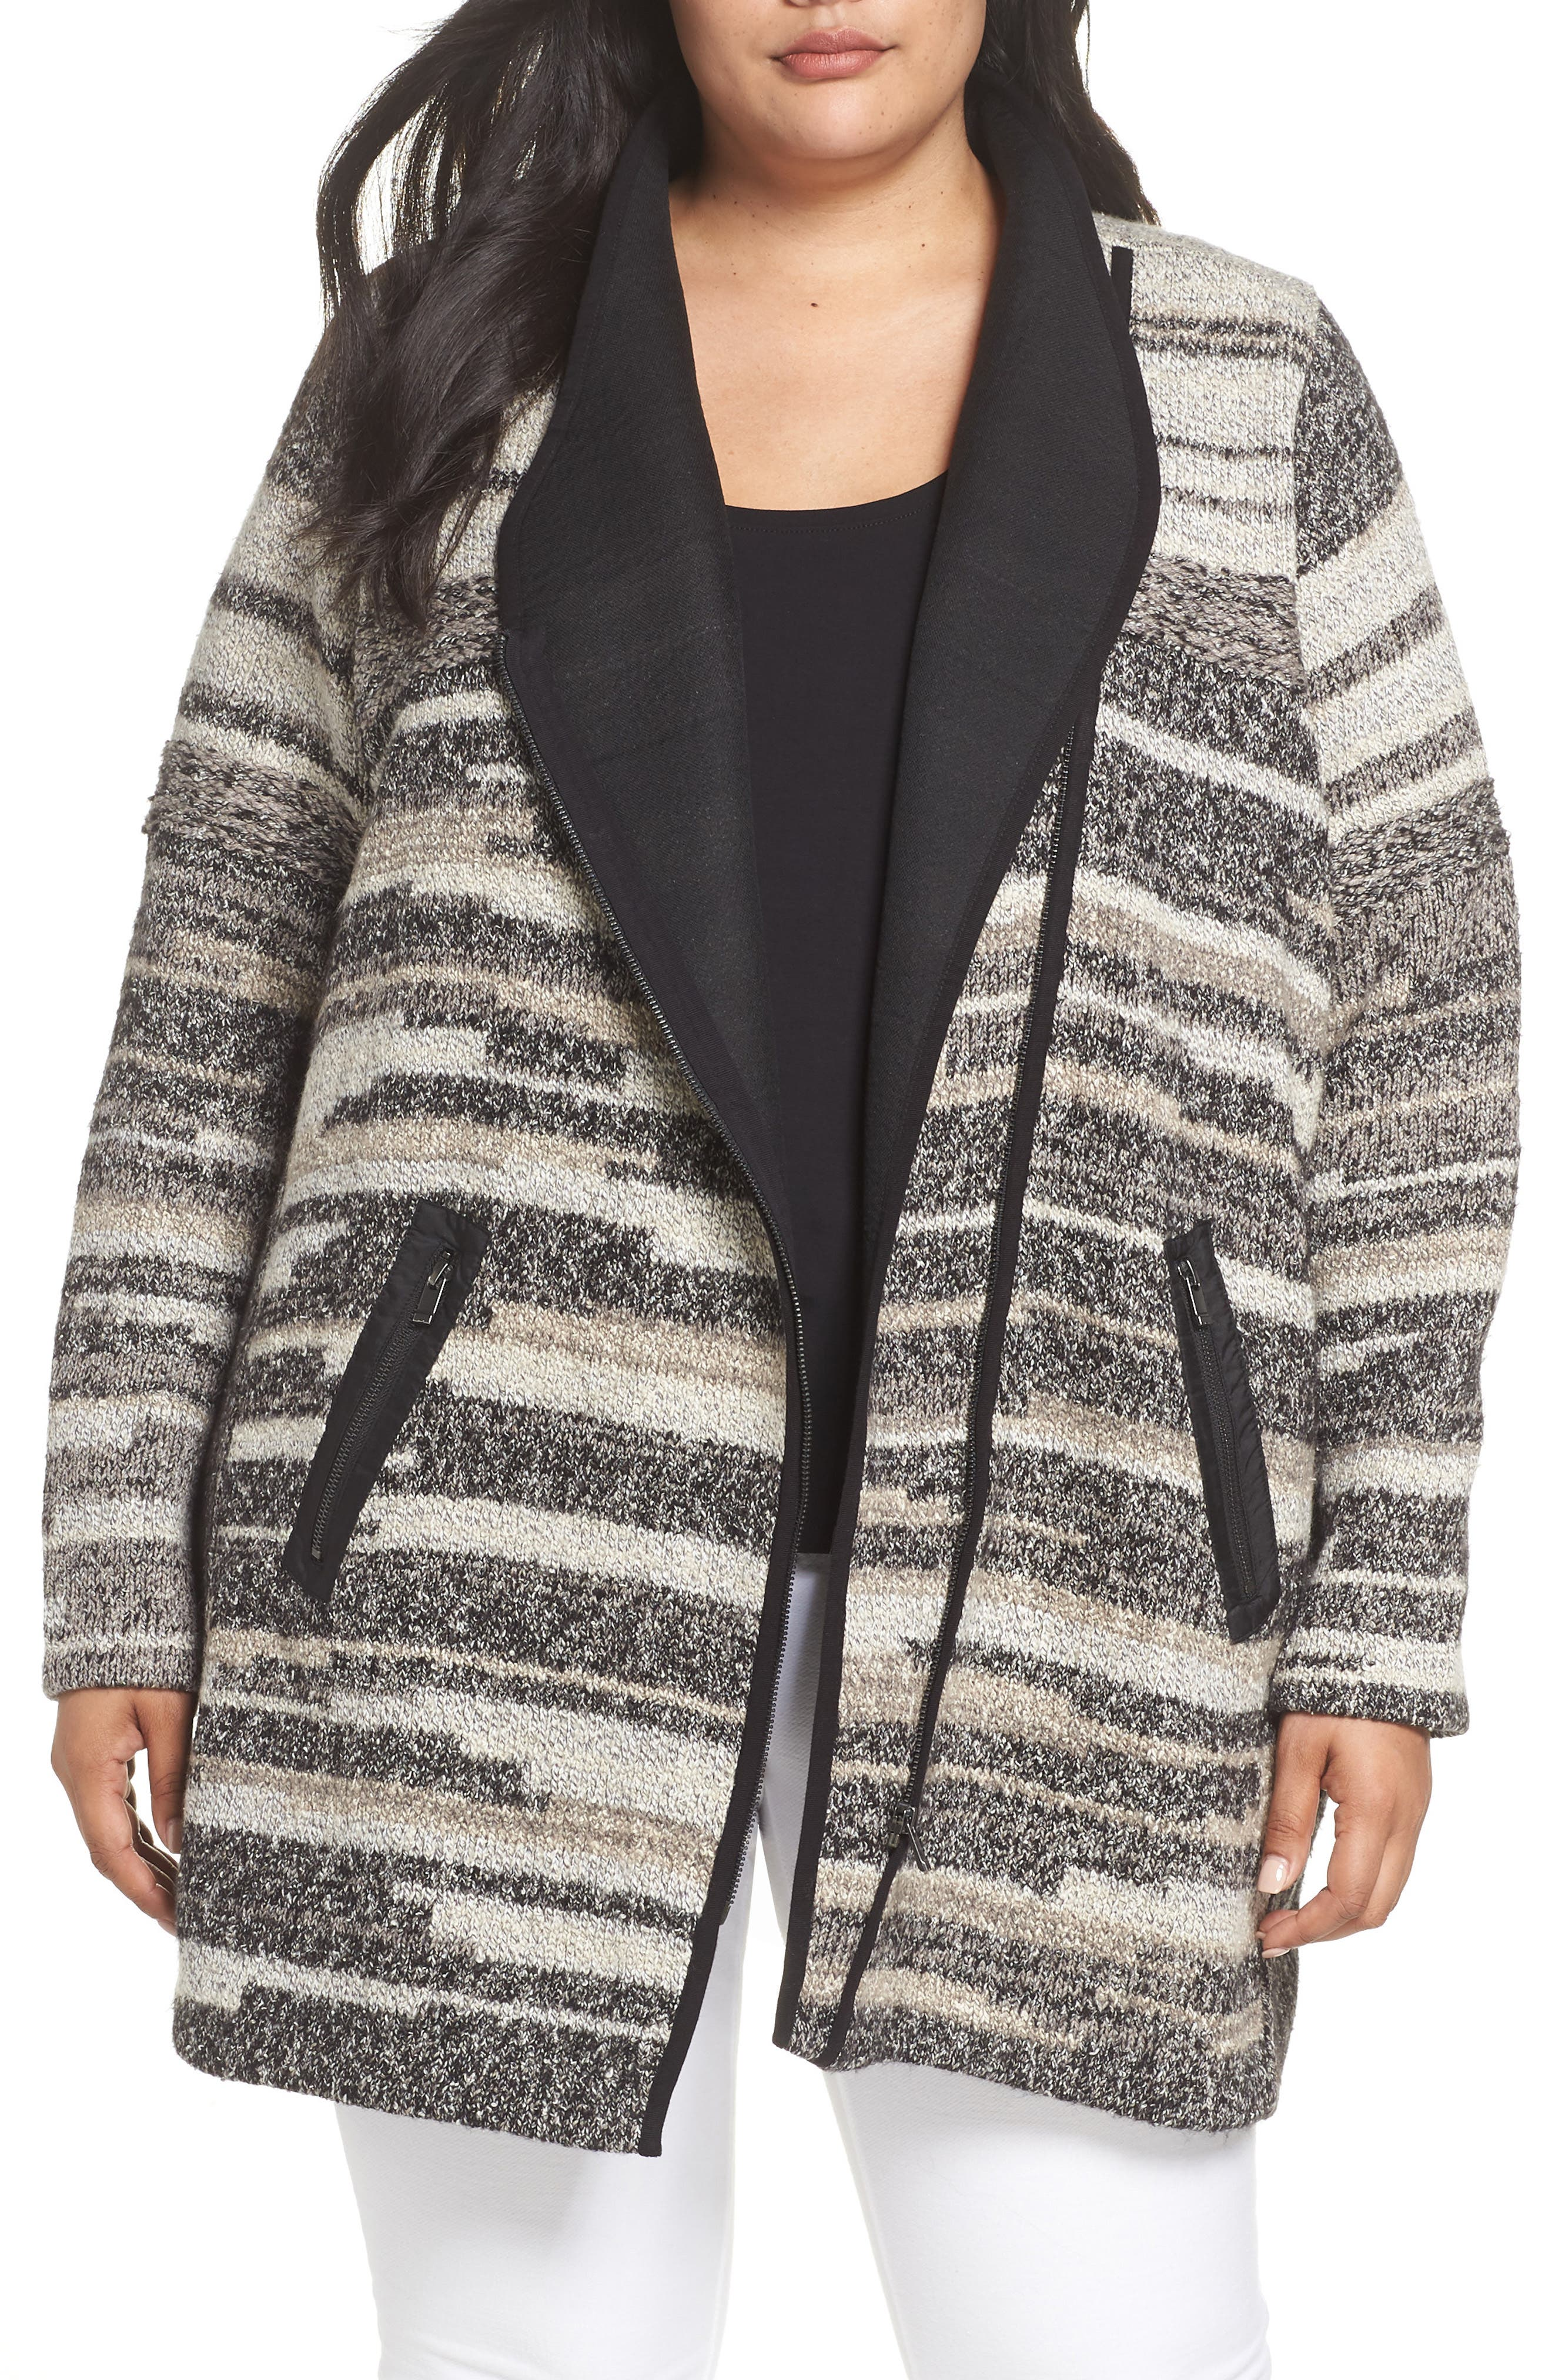 NIC AND ZOE PLUS Nic+Zoe Plus Visionary Jacket - 100% Exclusive in Neutral